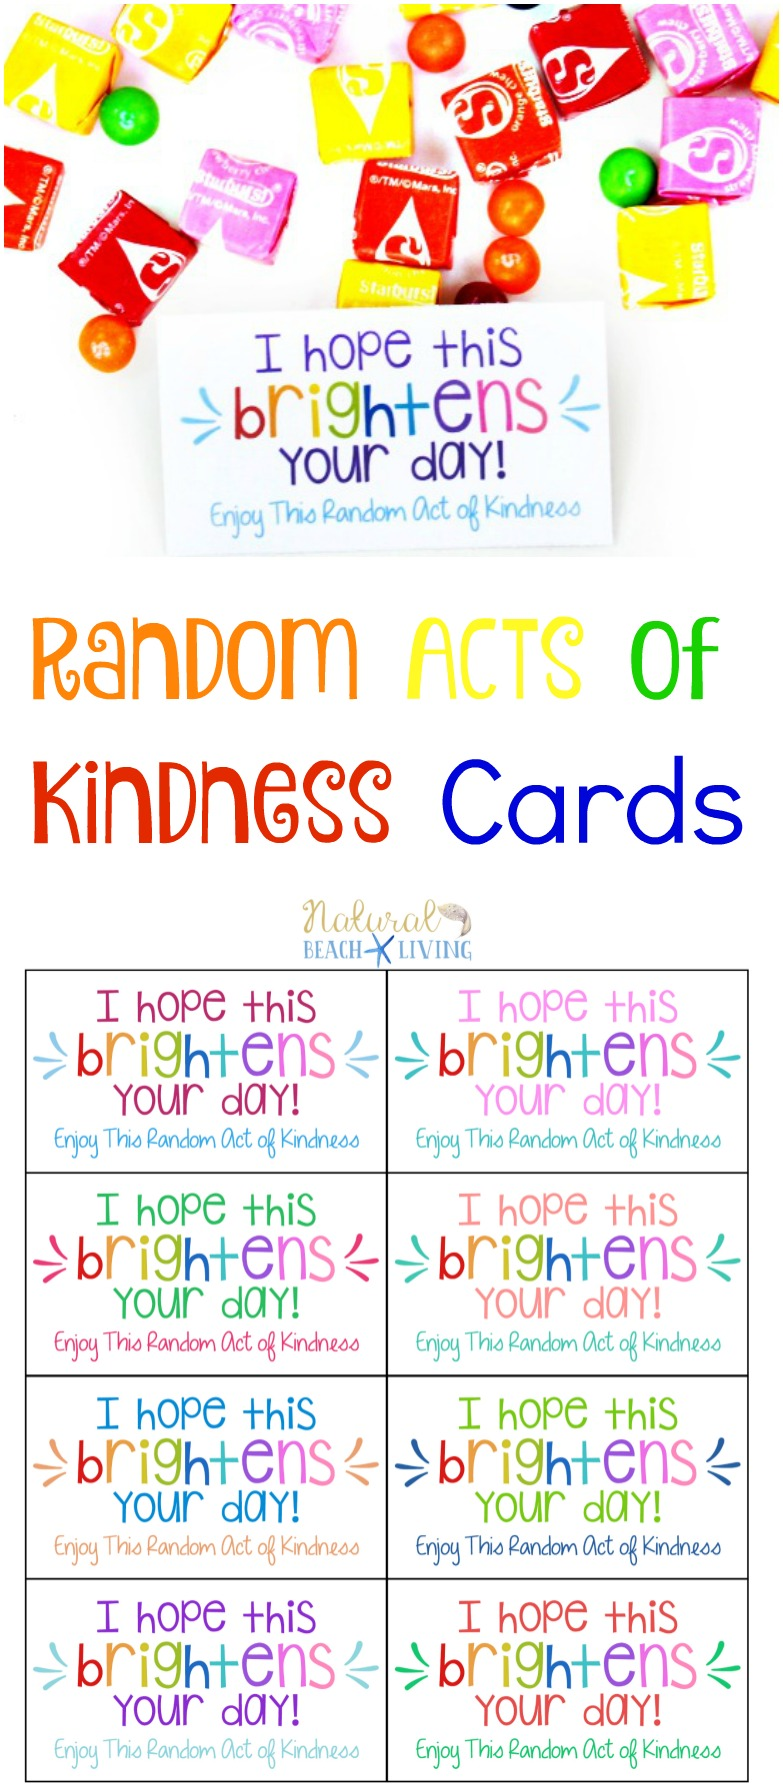 photograph about Kindness Cards Printable titled The Excellent Random Functions of Kindness Printable Playing cards Totally free